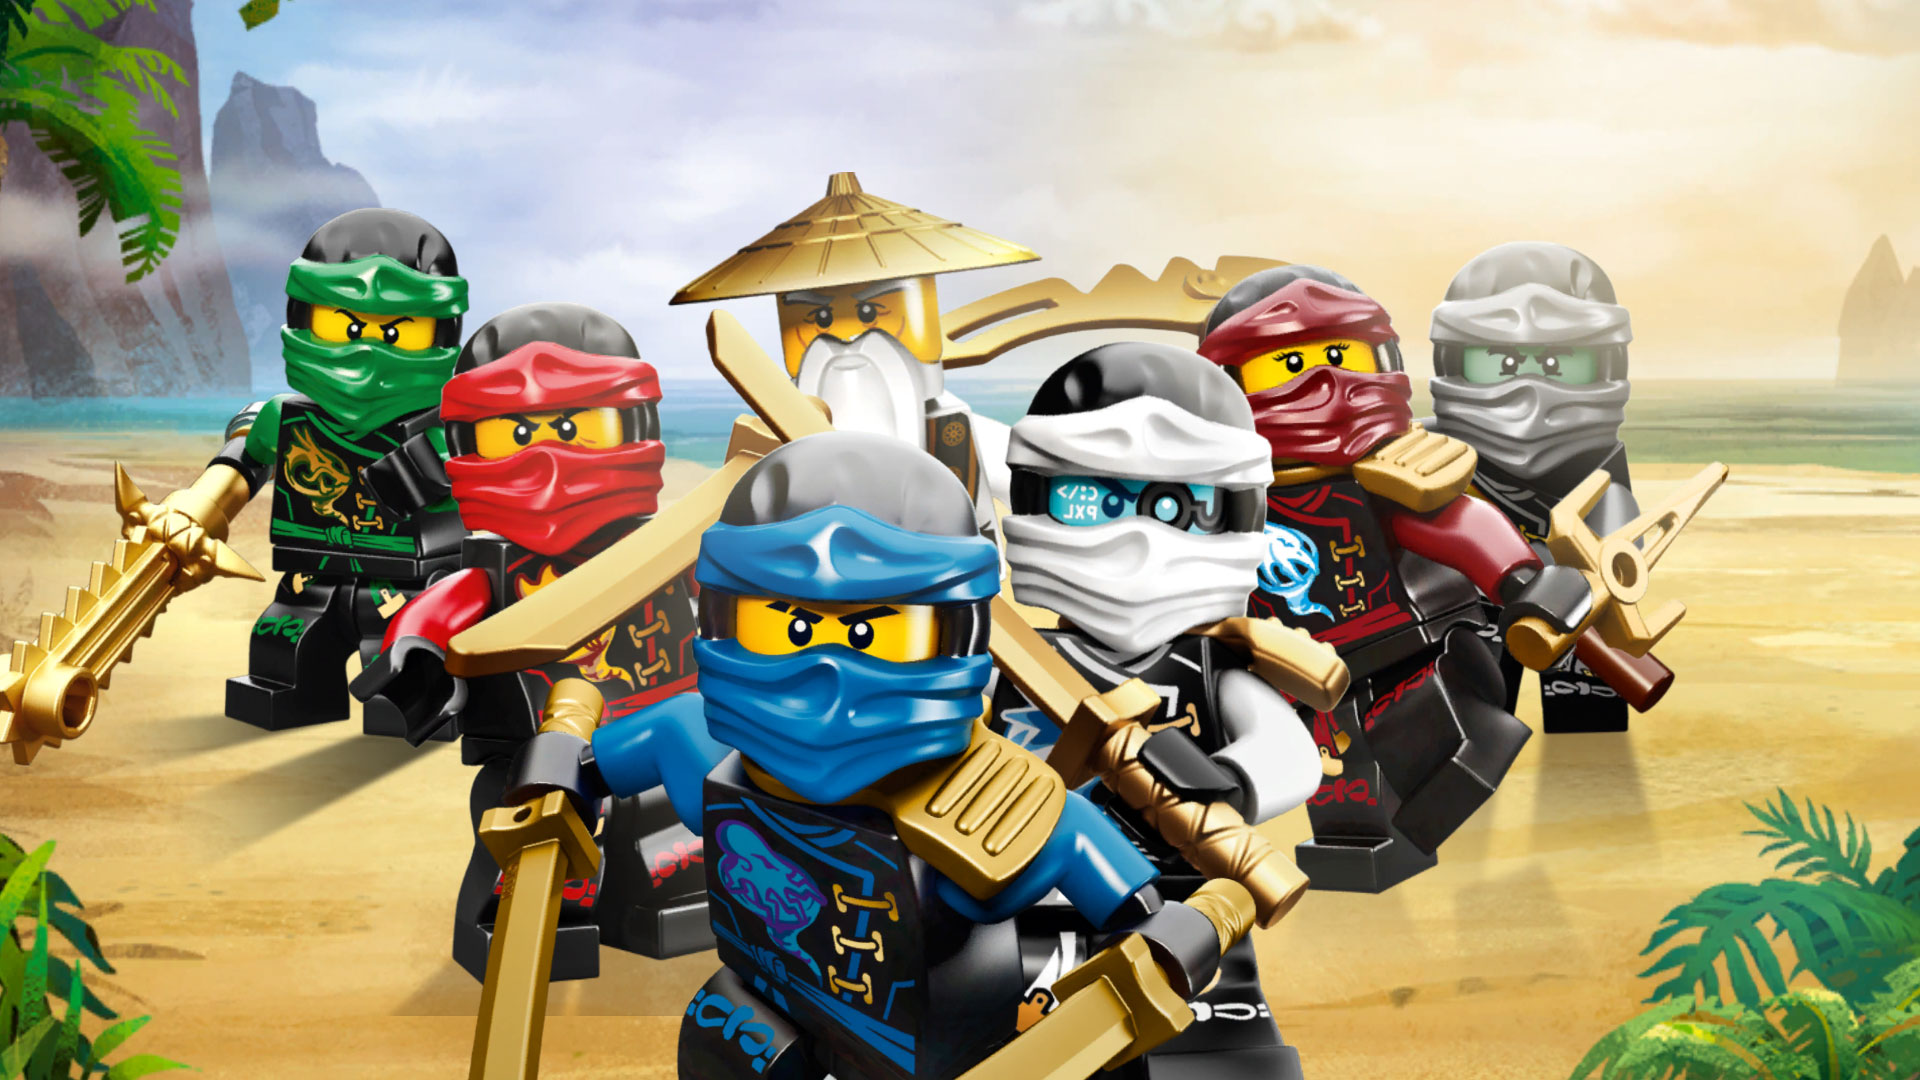 Ninjago Voice Cast  Jackie Chan  Dave Franco   More Following the smashing success of 2014 s The Lego Movie  Warner Bros  has  been building up its Lego movie franchise brick by brick